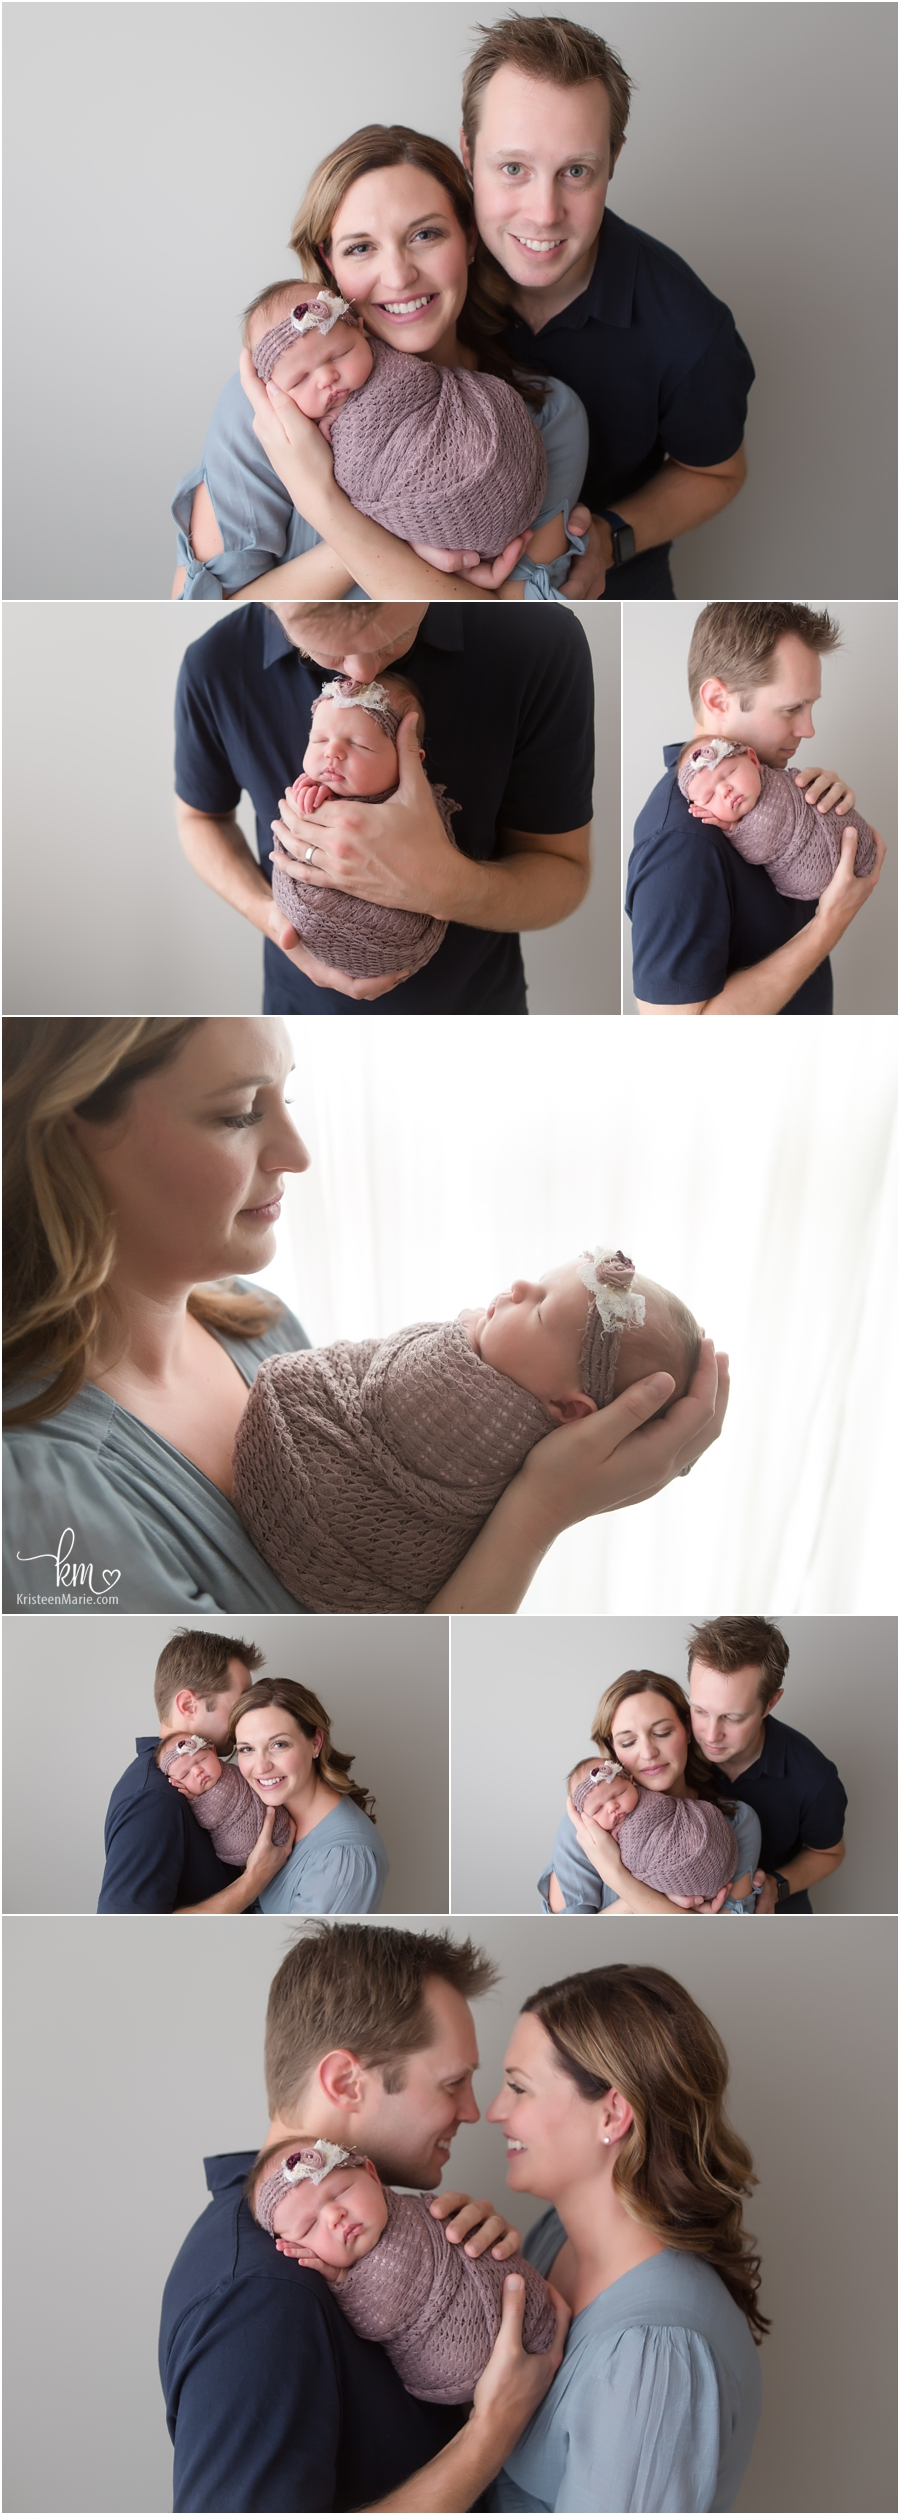 Whole family in studio for newborn pictures in Indianapolis, Indiana - family poses